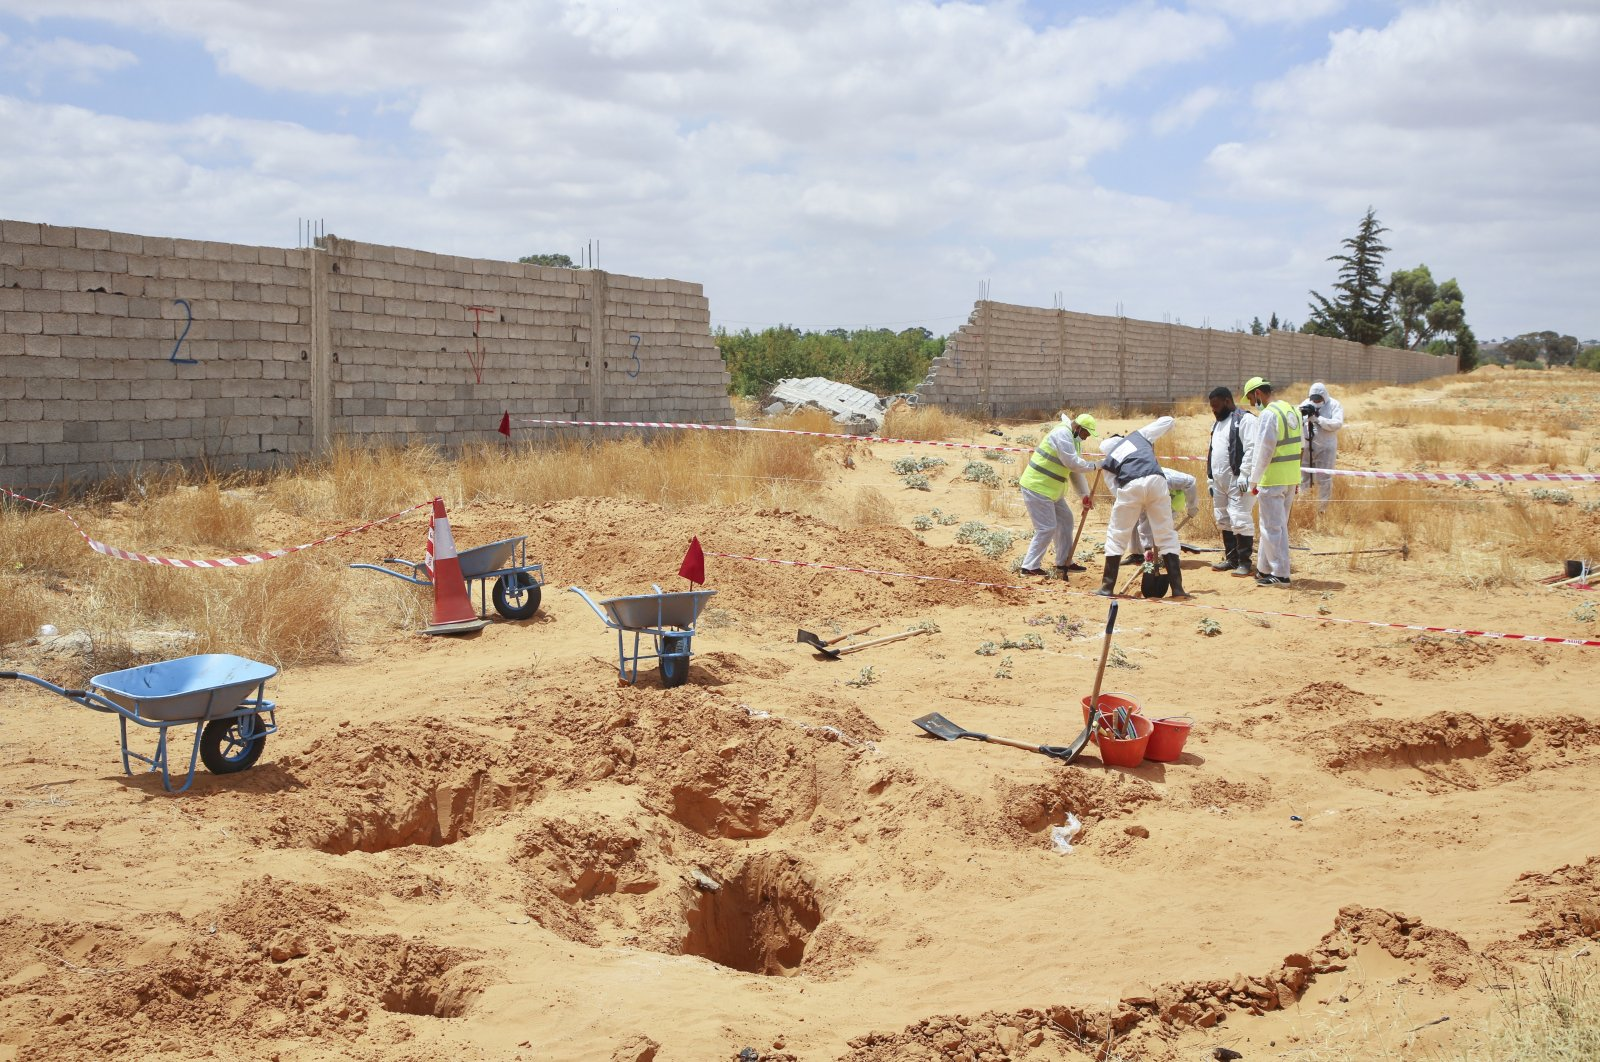 Libyan Ministry of justice employees dig at a site of a suspected mass grave in the town of Tarhuna, Libya, June 23, 2020. (AP File Photo)